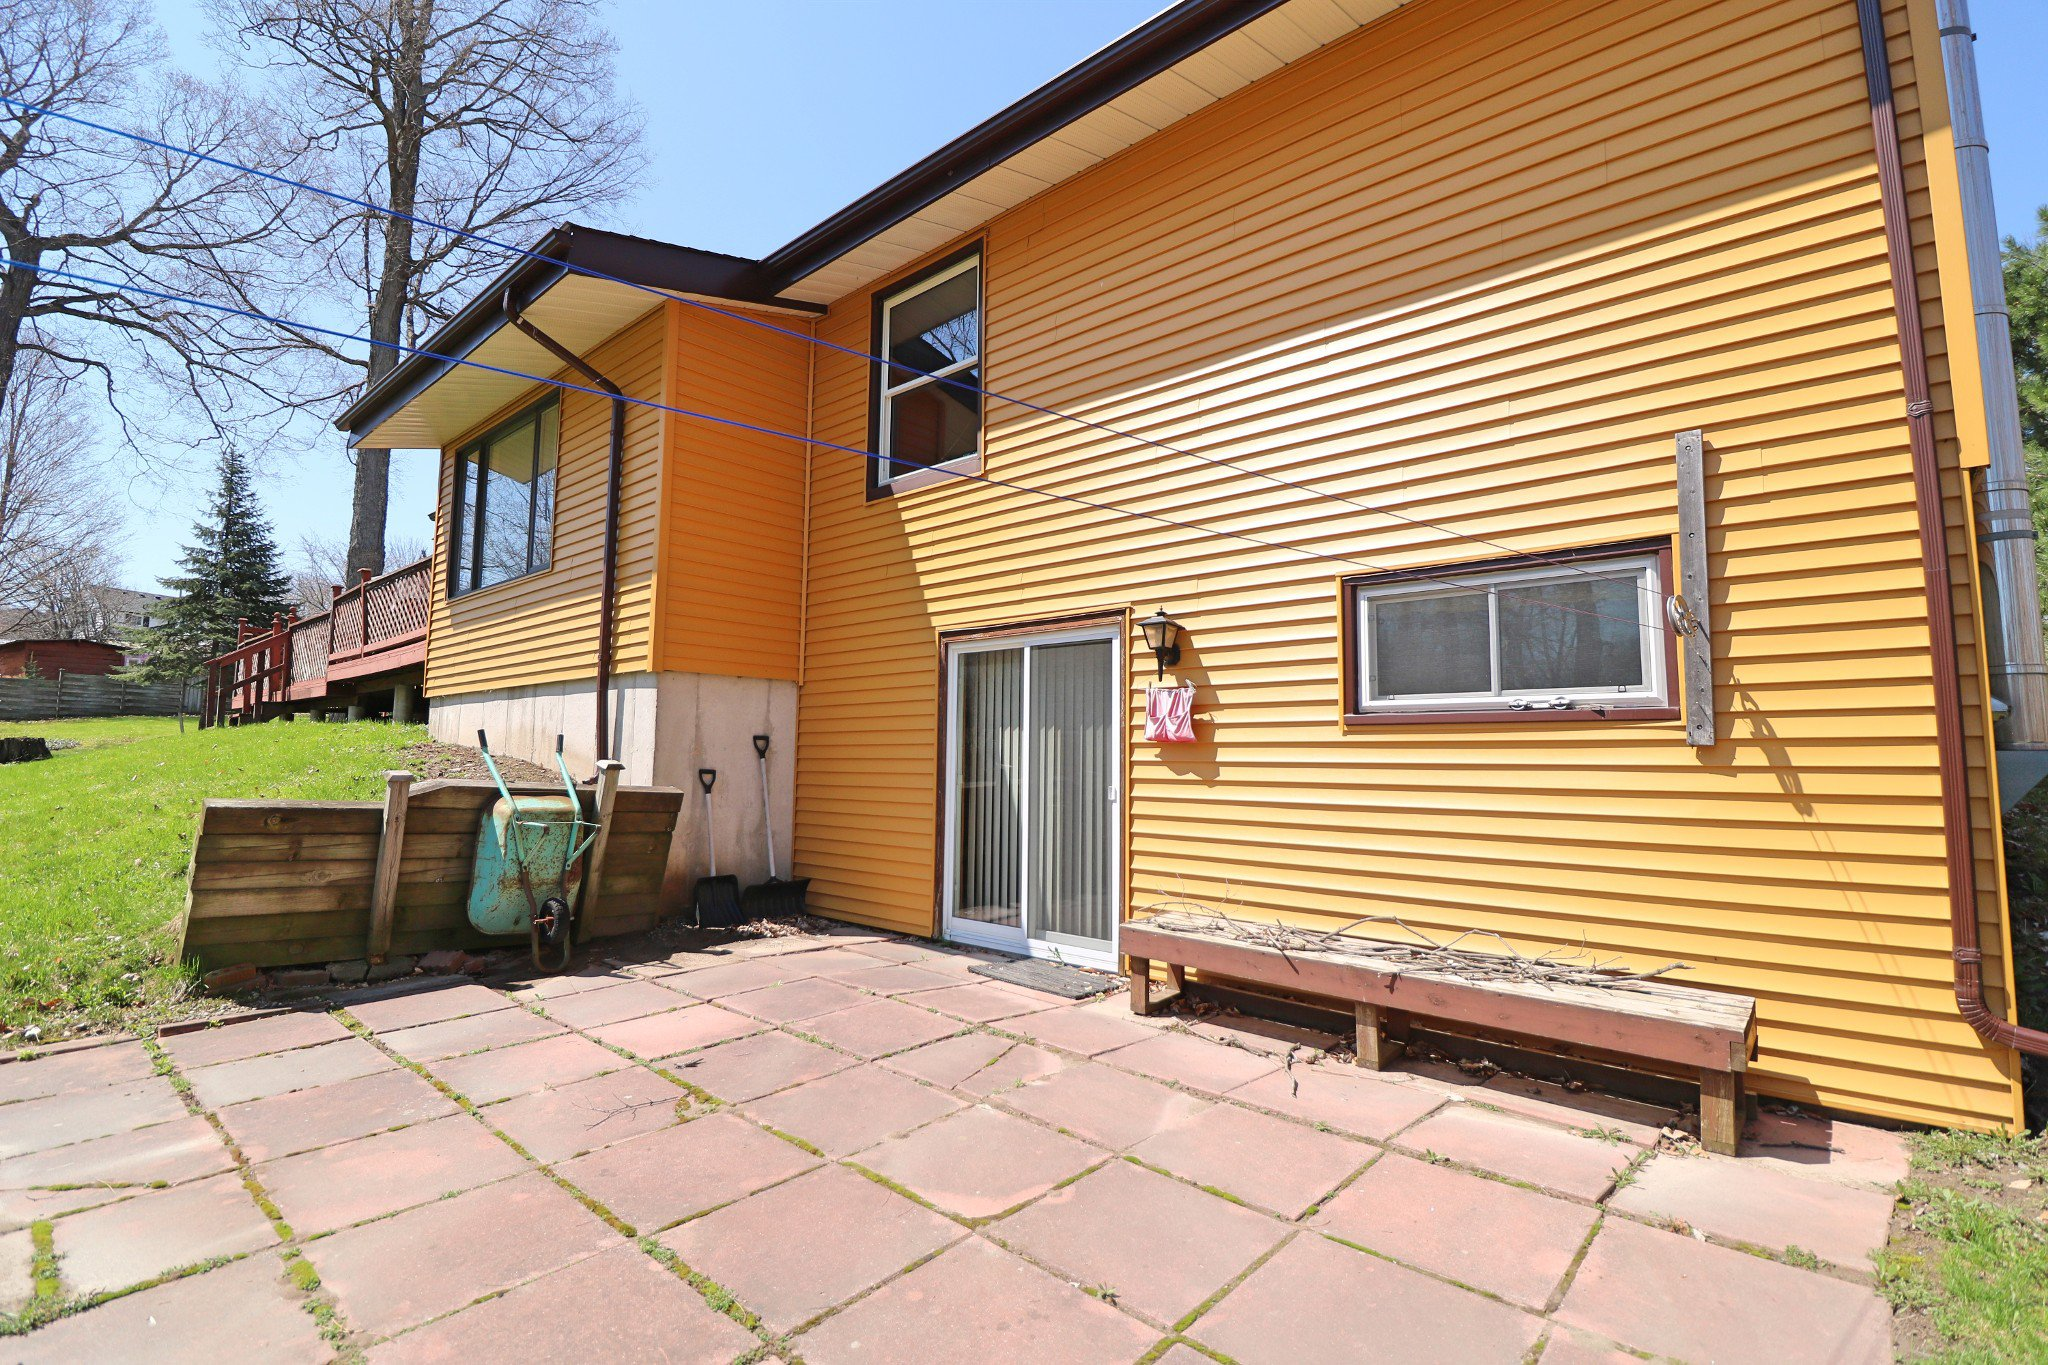 Photo 18: Photos: 37 Halstead Drive in Roseneath: Residential Detached for sale : MLS®# 192863